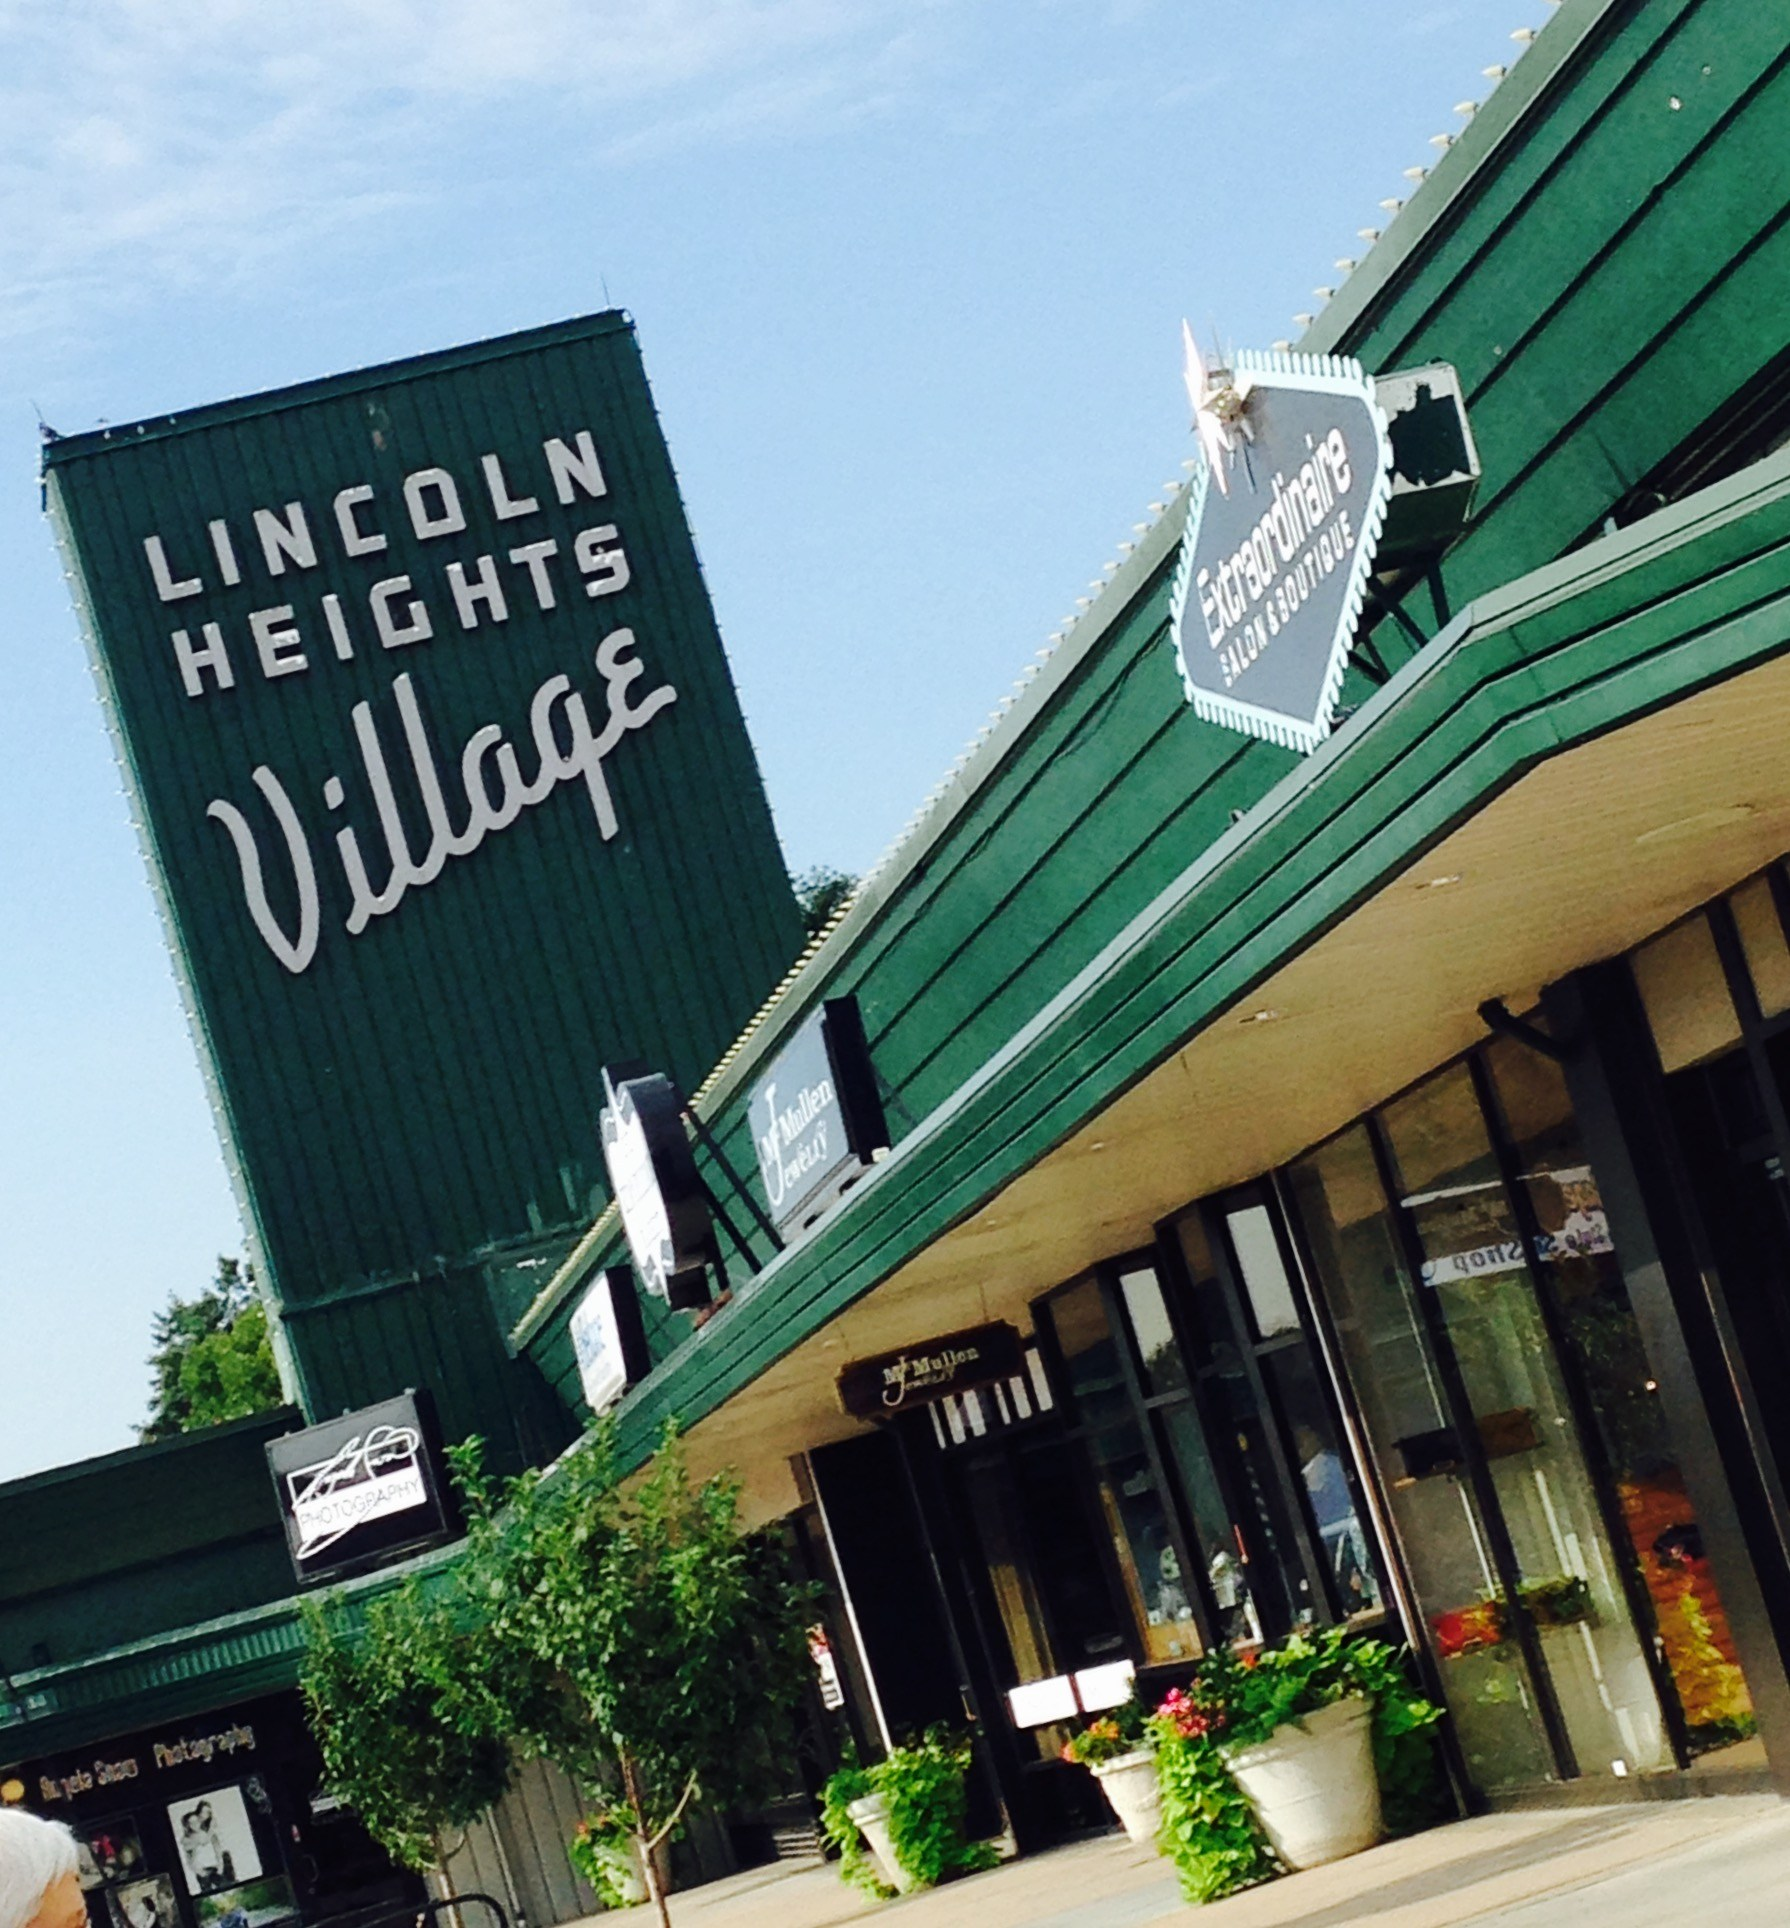 The Iconic Lincoln Heights Village Sign